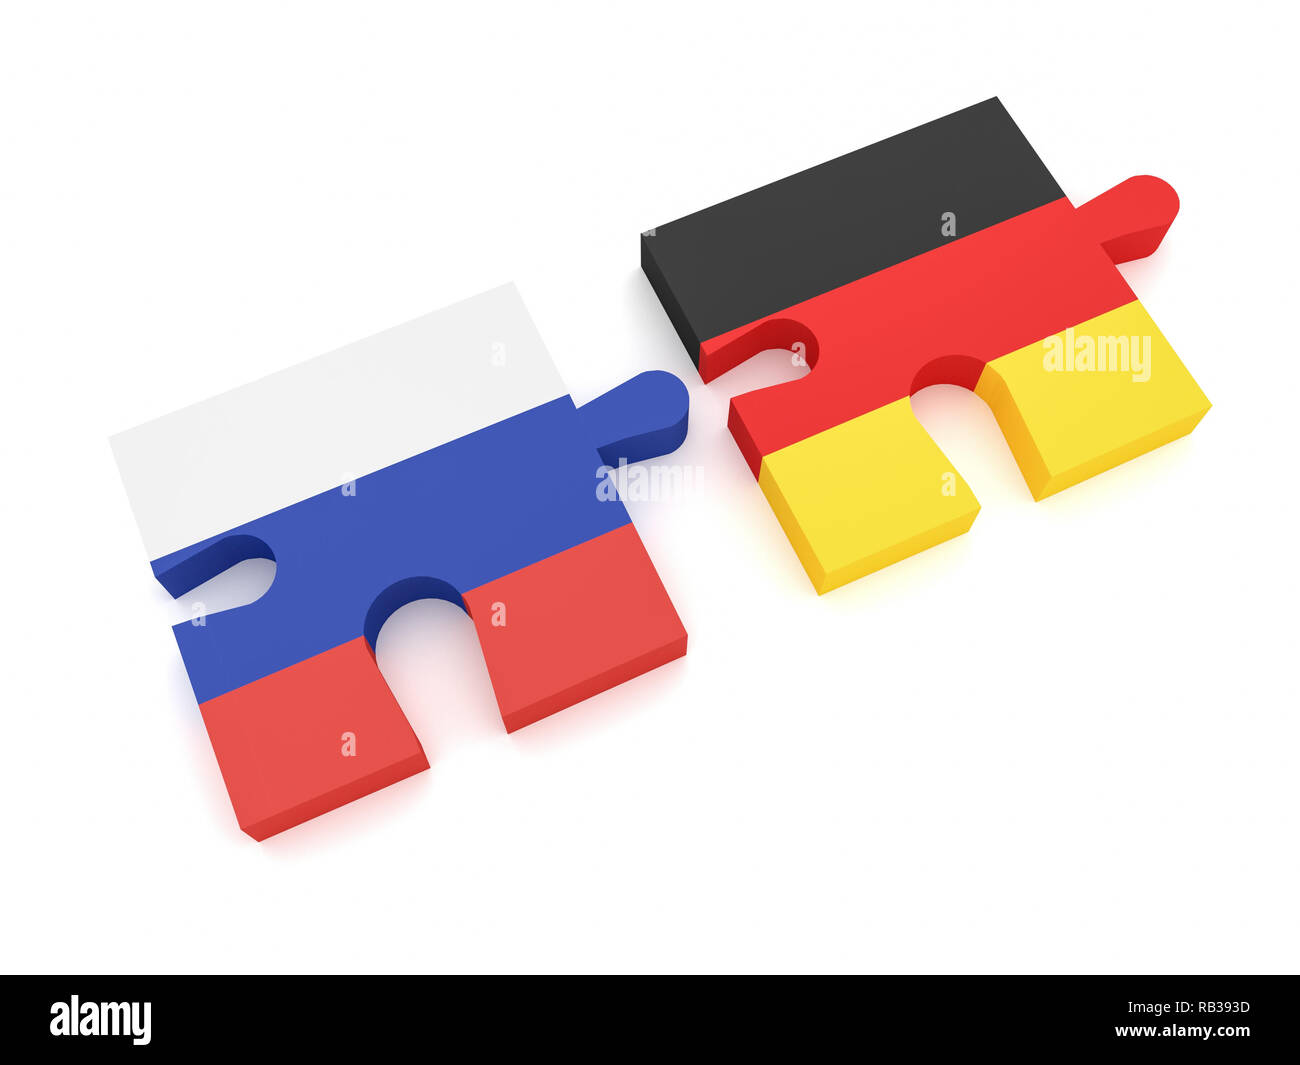 Russia Germany Partnership: Russian Flag And German Flag Puzzle Pieces, 3d illustration on white background - Stock Image